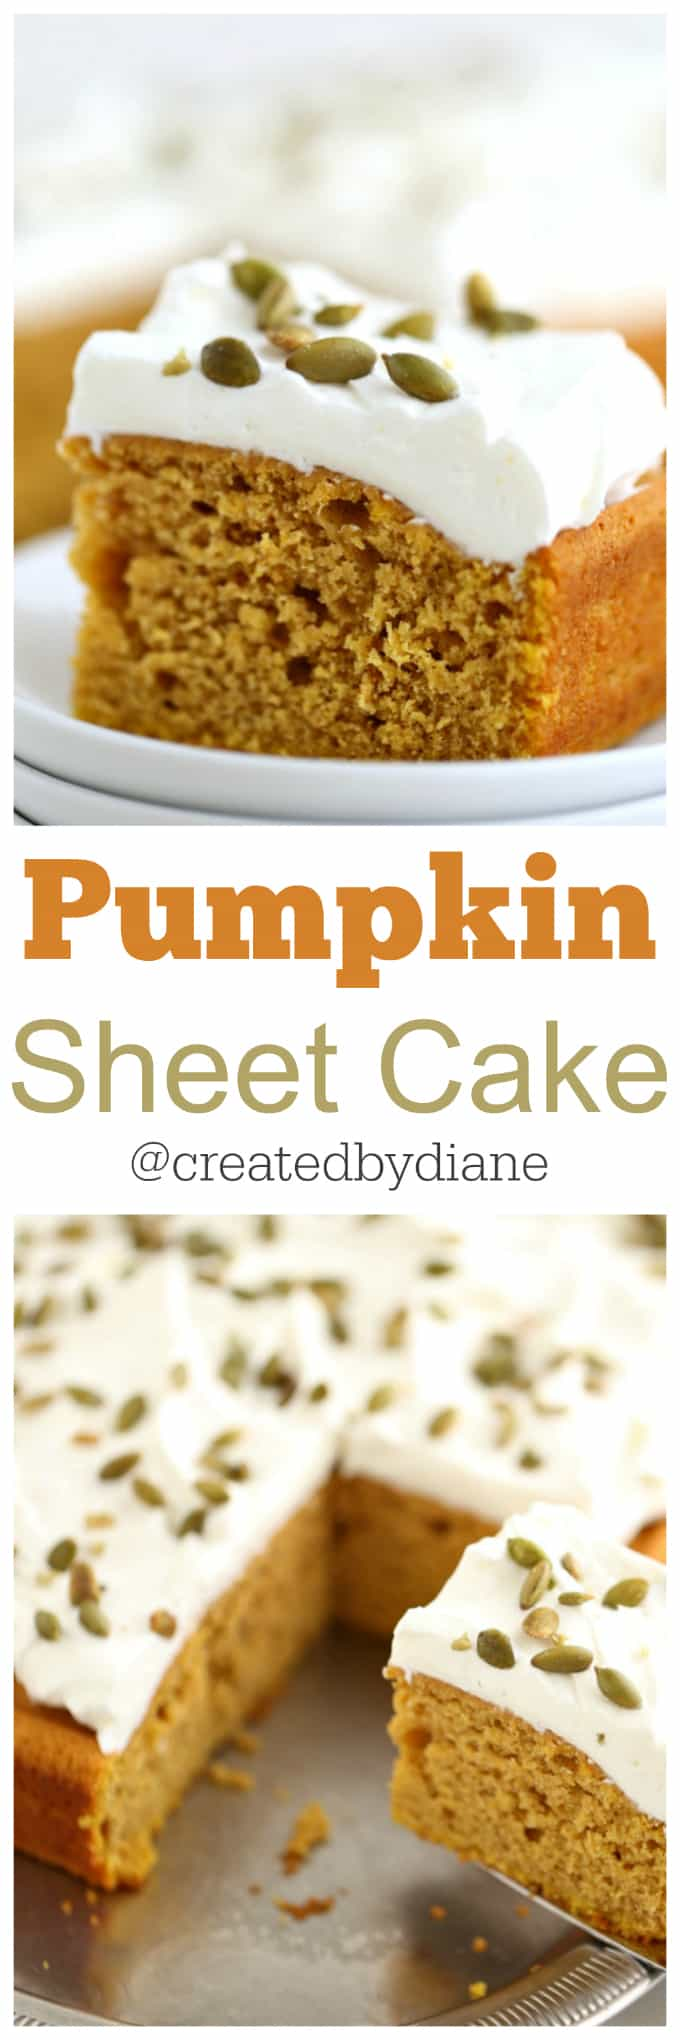 simple pumpkin sheet cake @createdbydiane